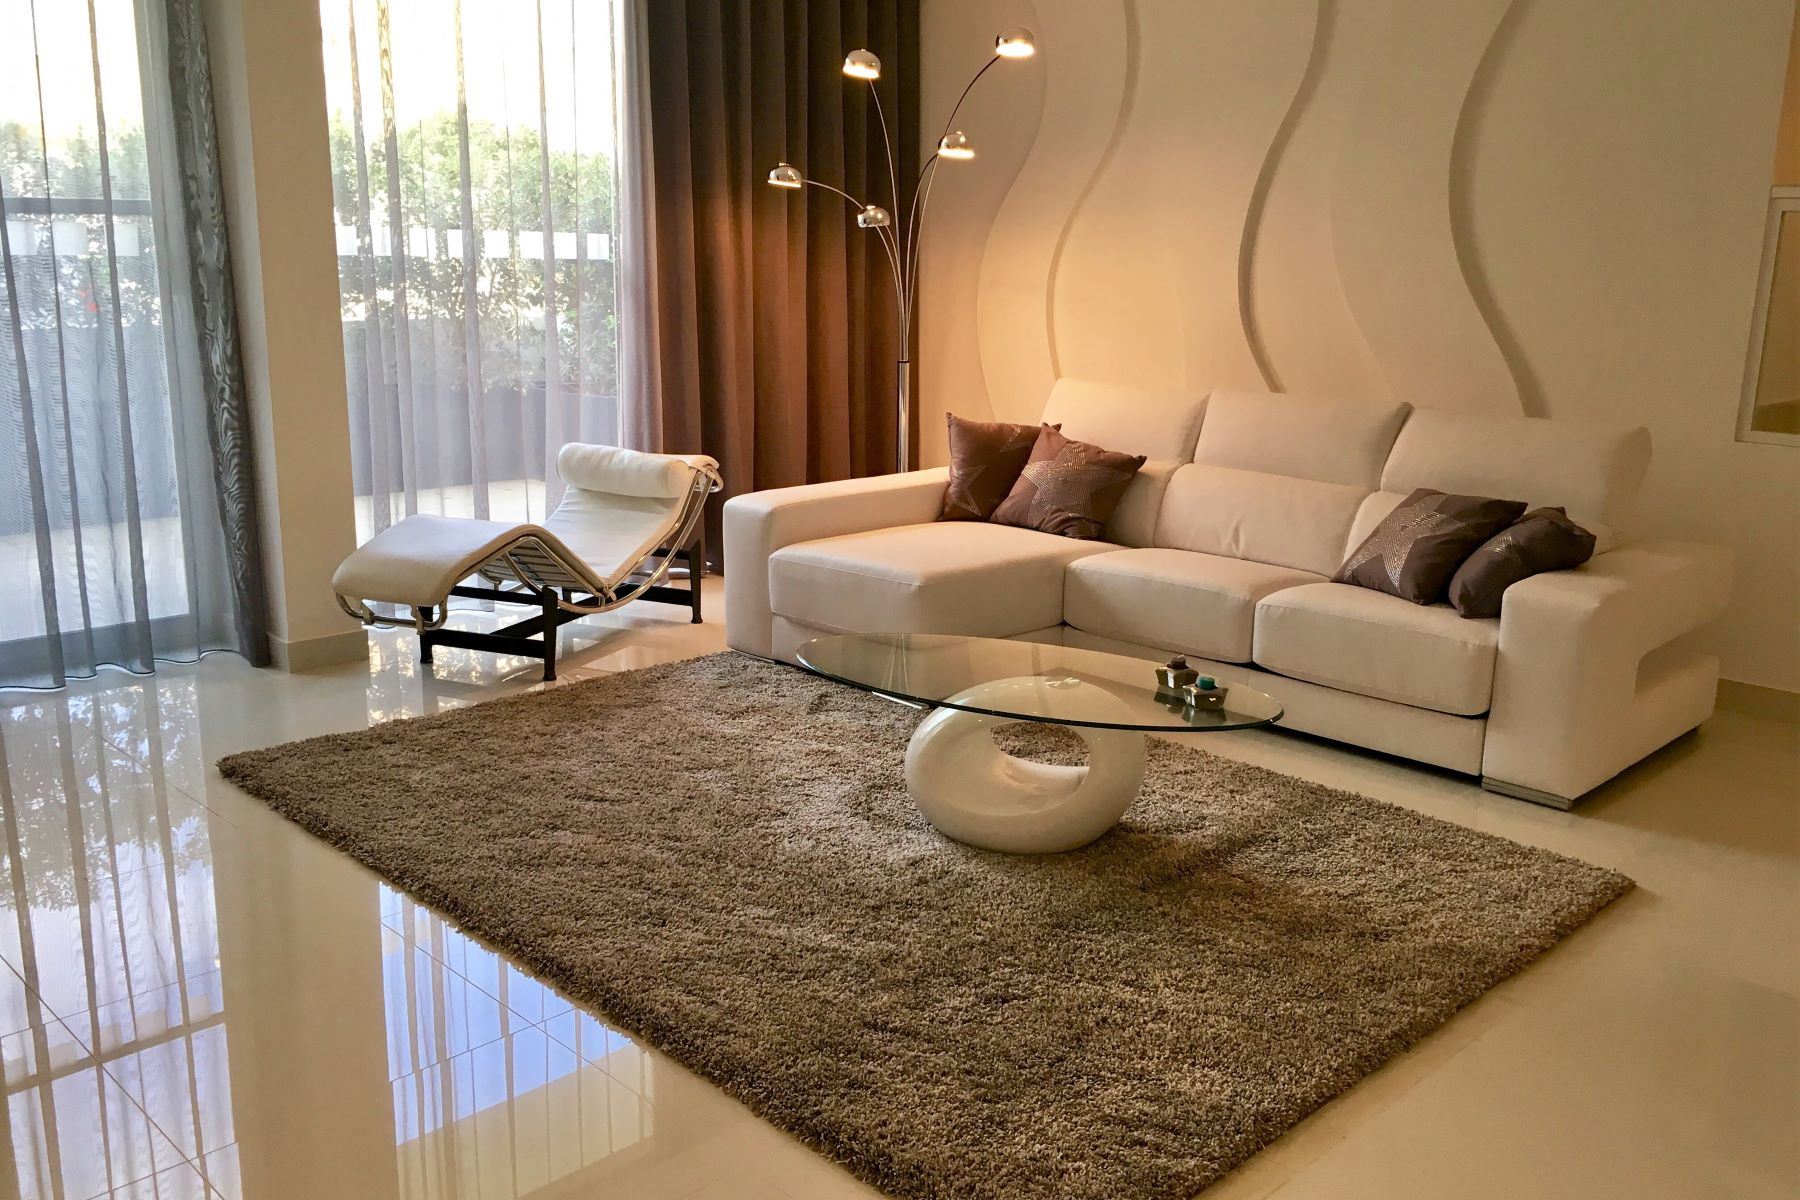 Single Family Home for Rent at Luxury Maisonette With Pool Swieqi, Malta